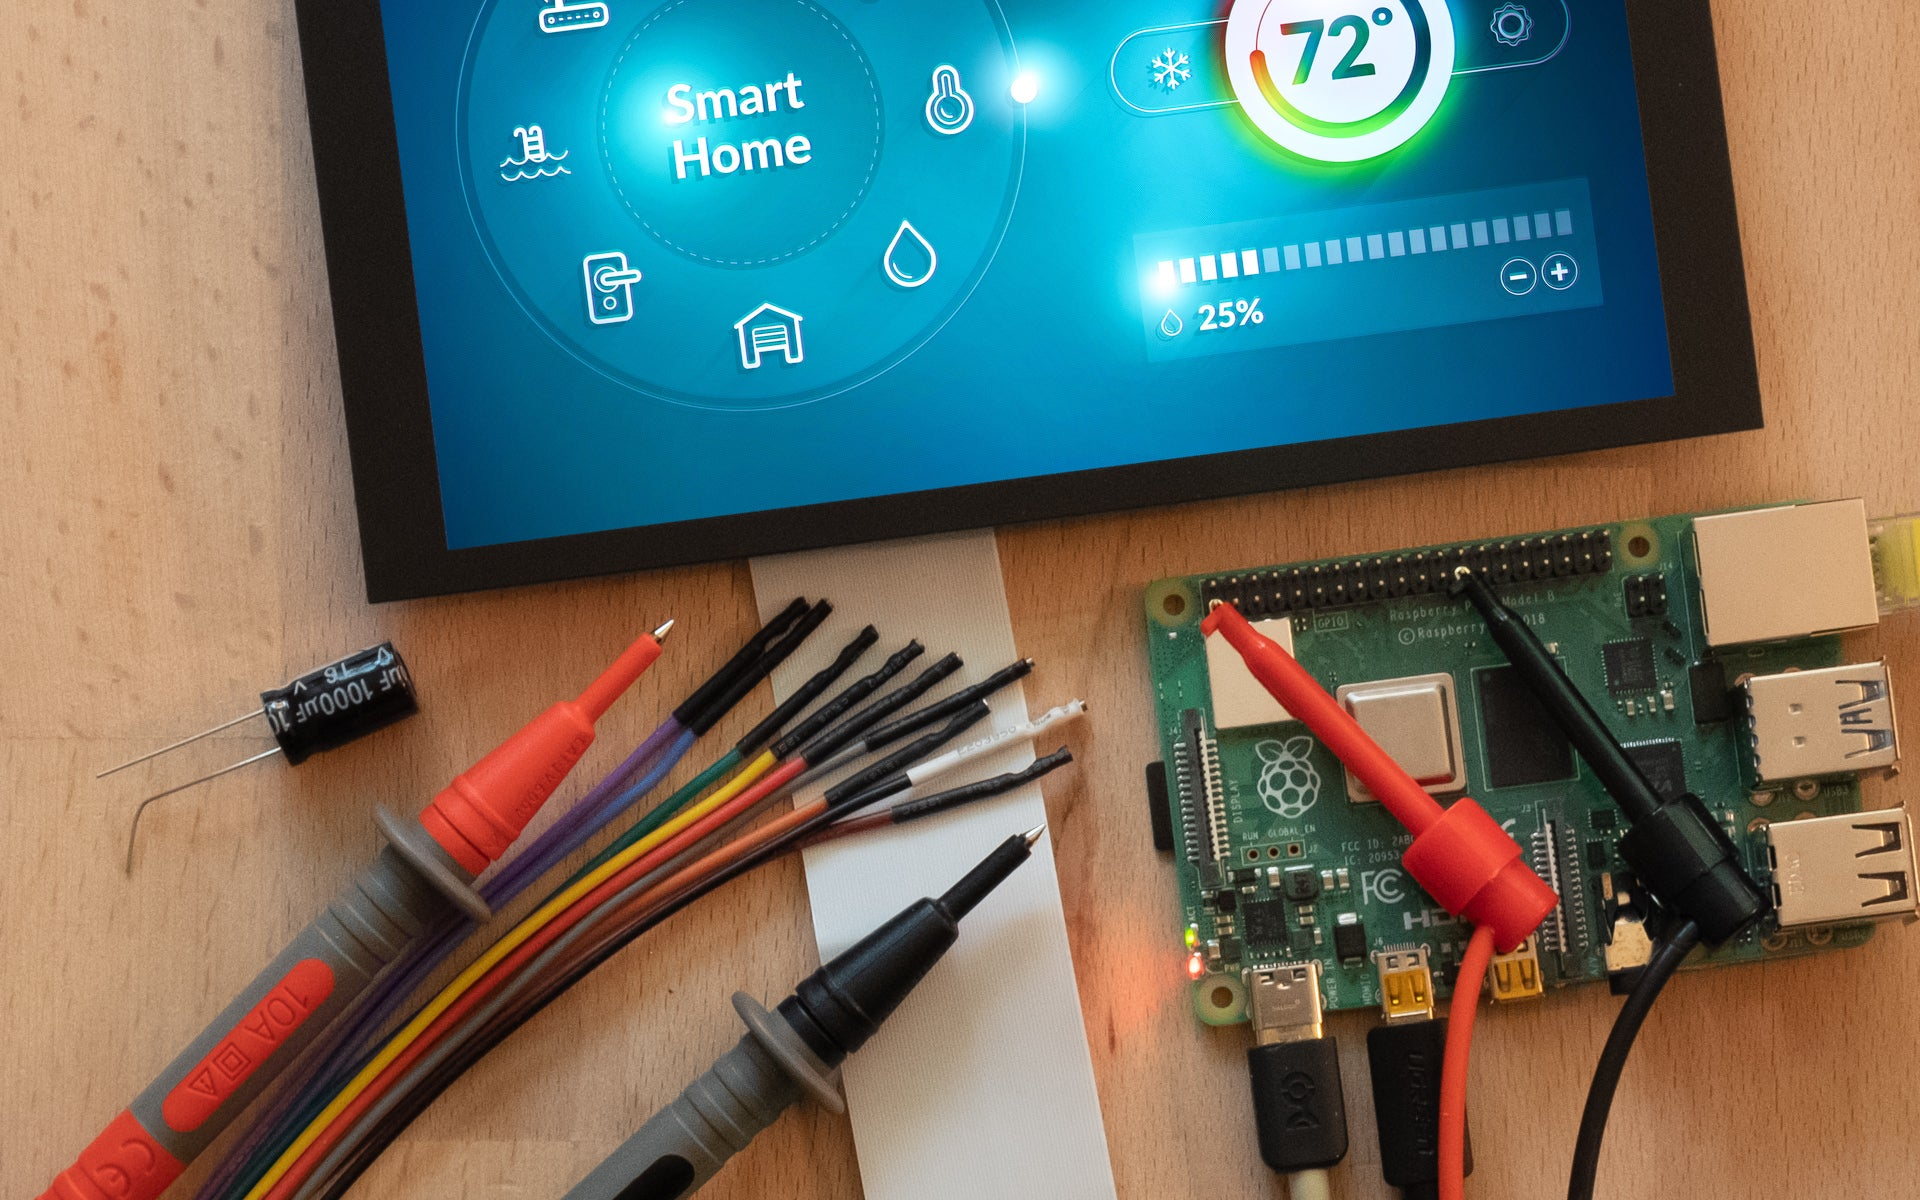 7 Tools for GUI Development on Raspberry Pi